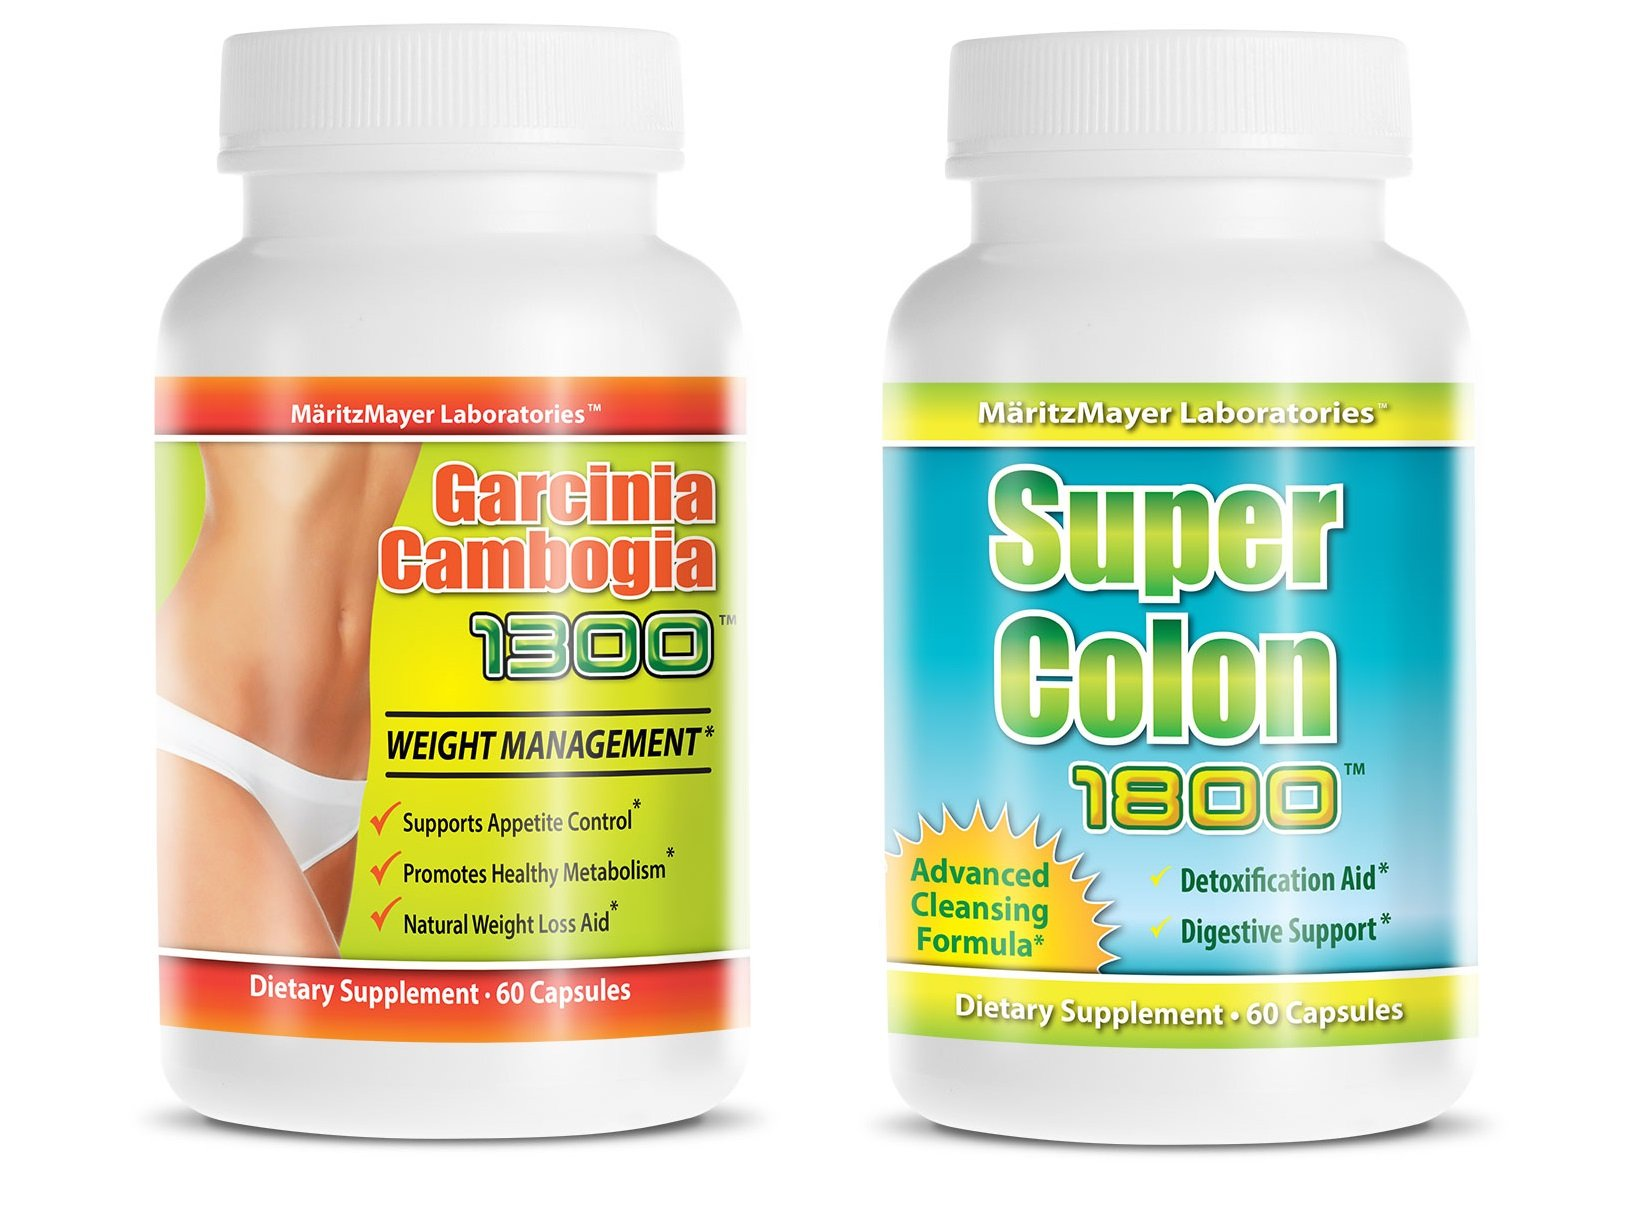 Womens health magazine pure garcinia cambogia extract